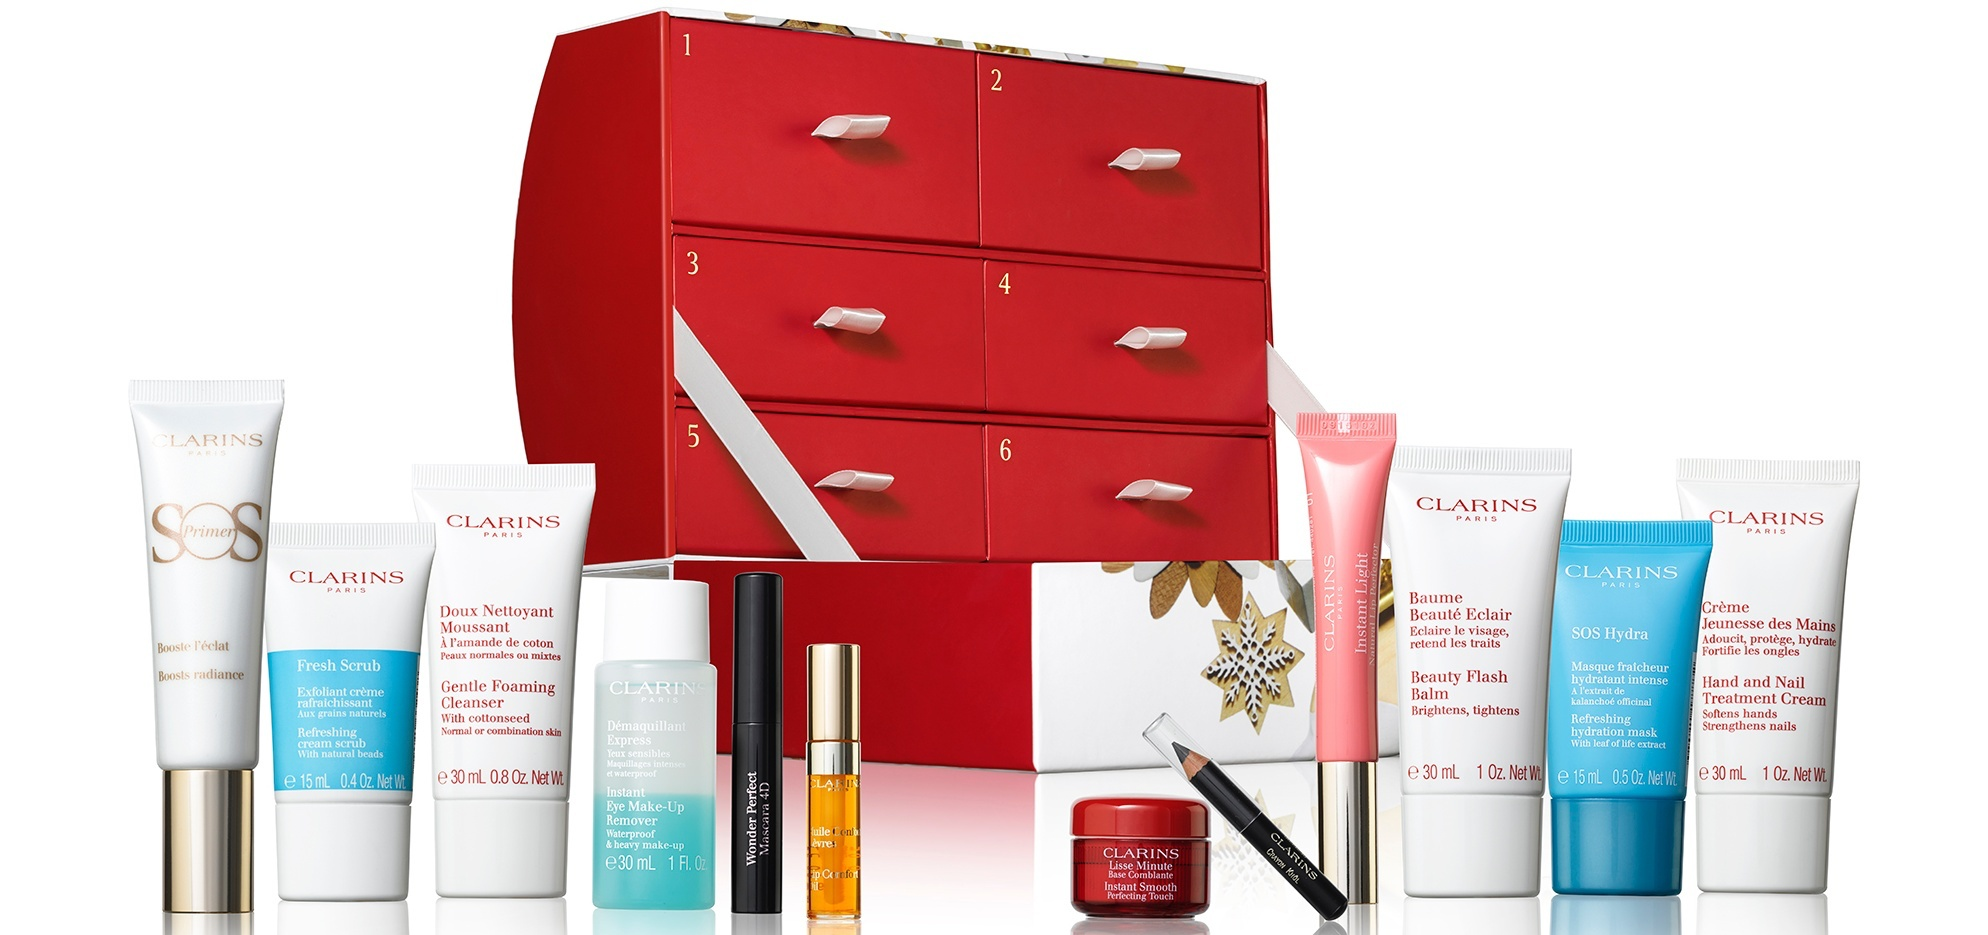 Clarins advent calendar 2019 - The LDN Diaries